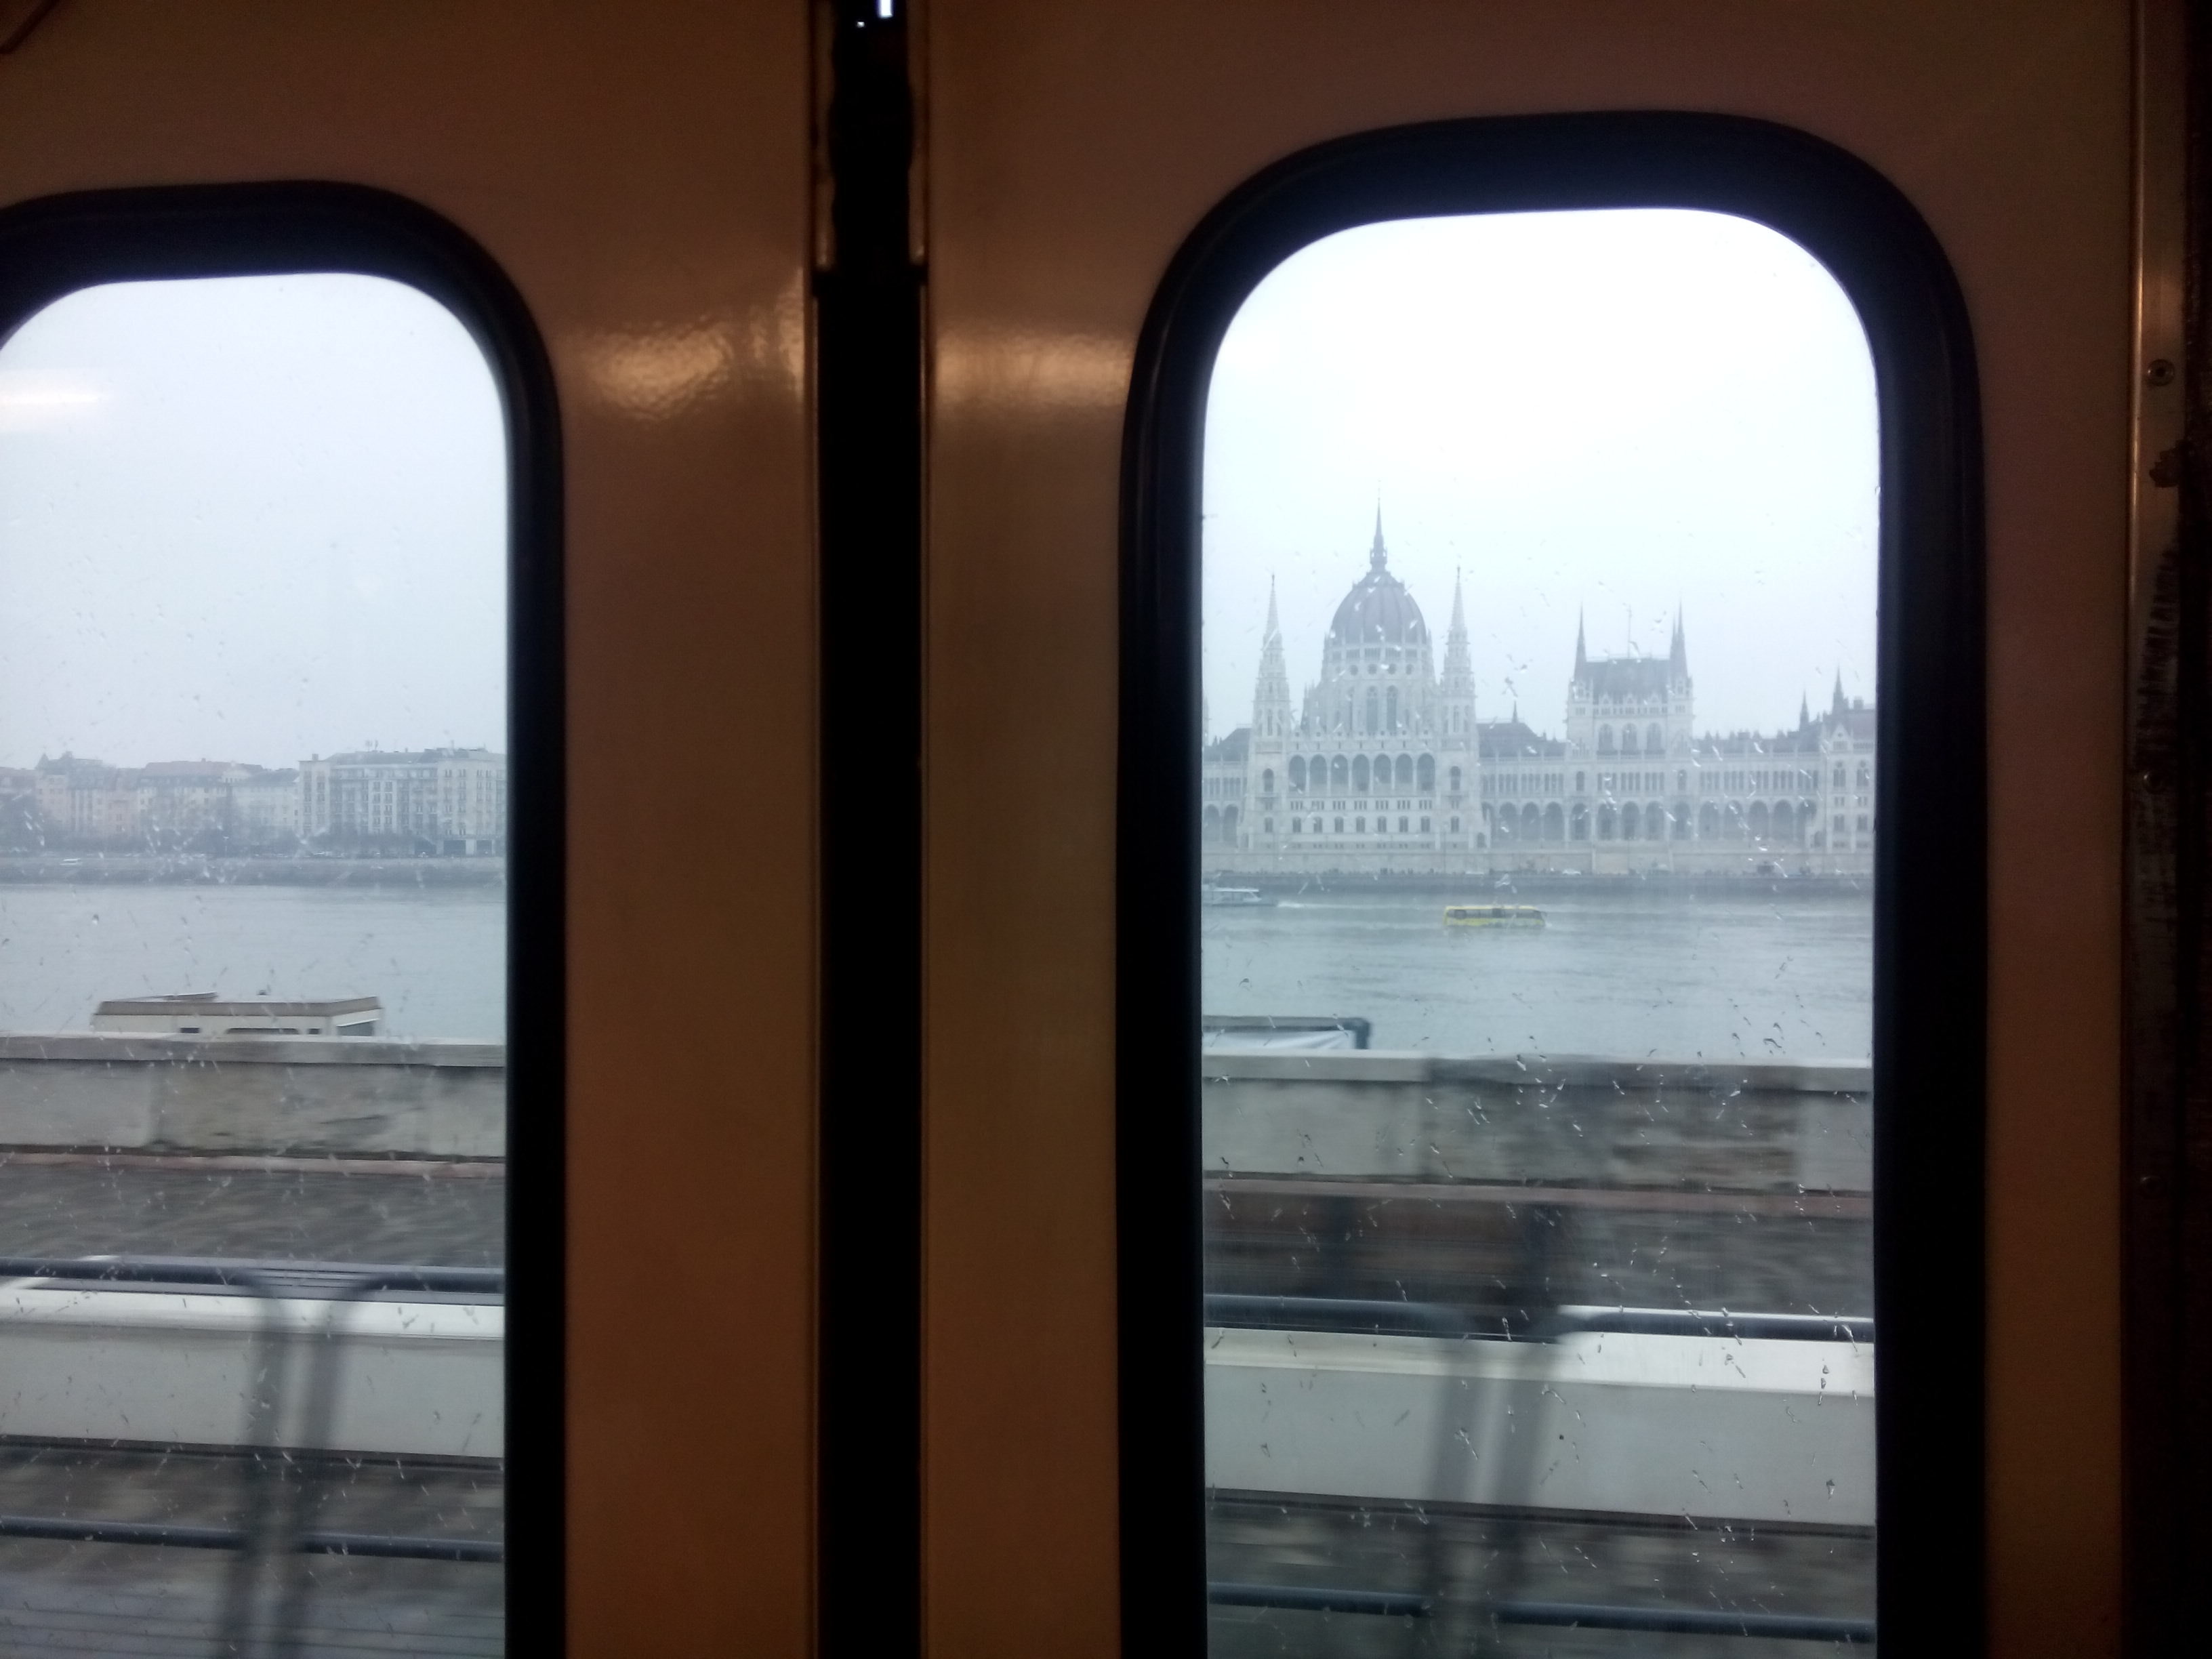 Inside window of a tram frames a grand white building across a river